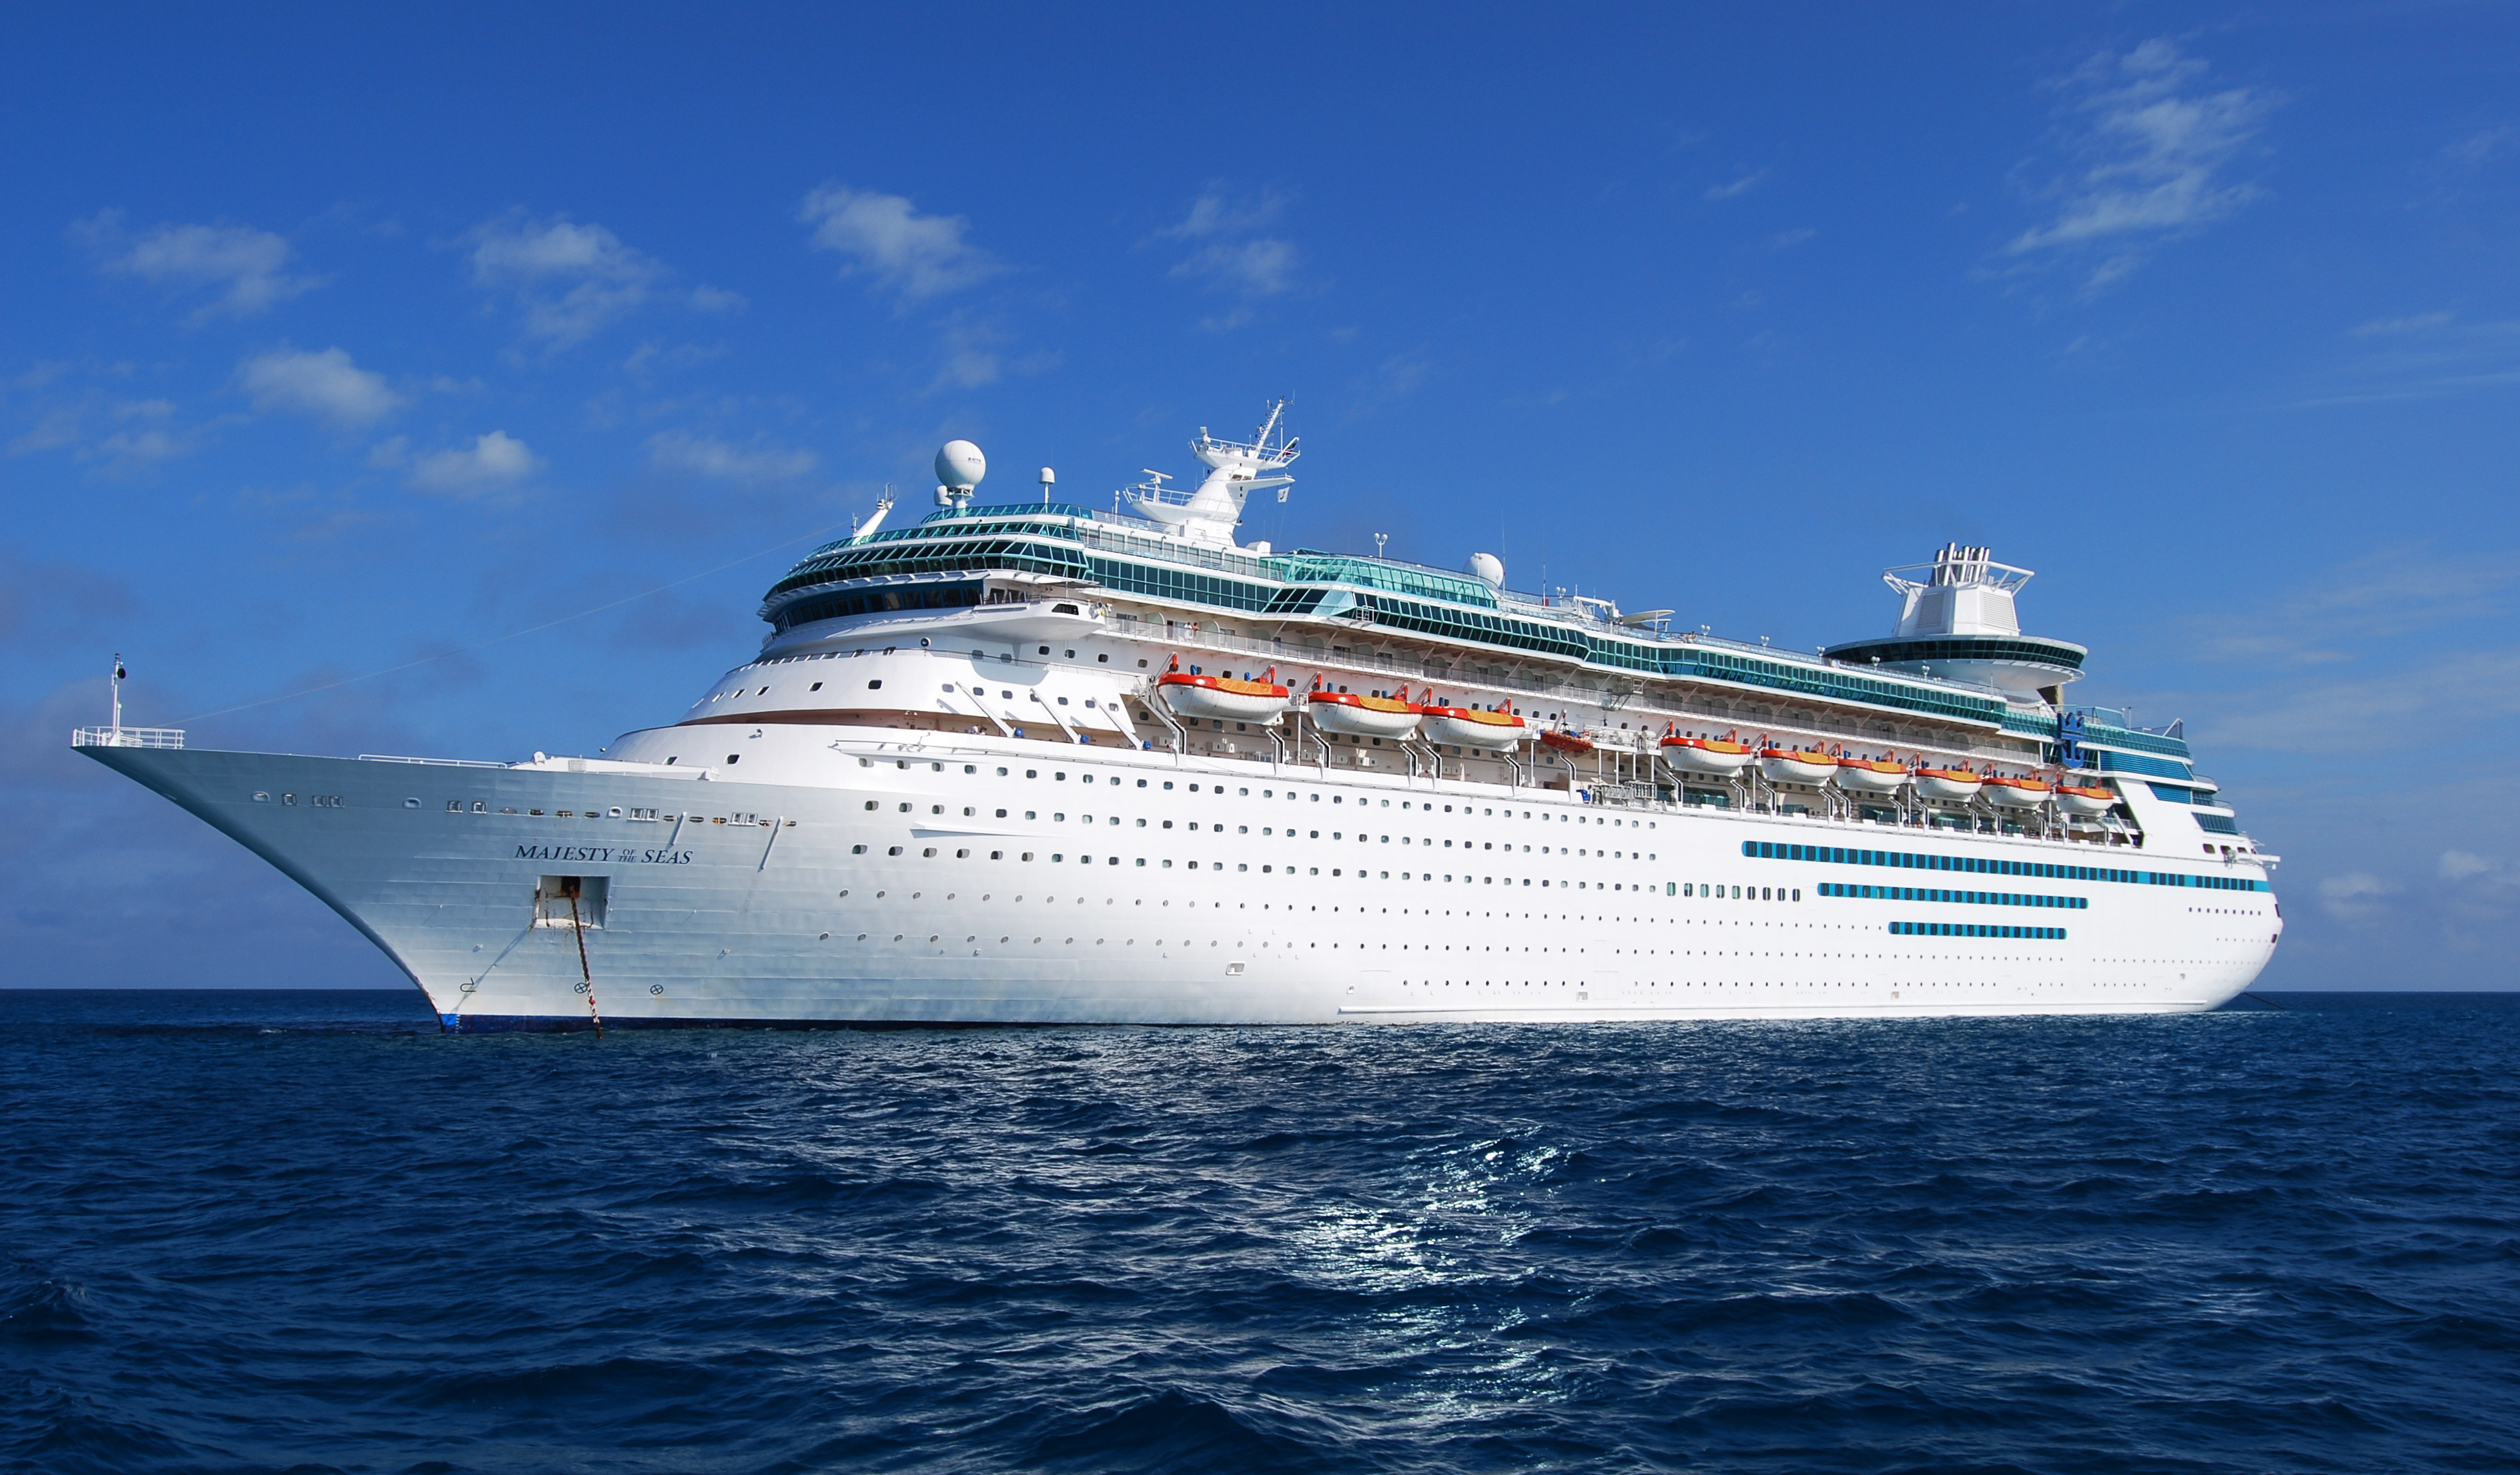 Cruise Ships - Custom security system in South Florida | Commercial ...